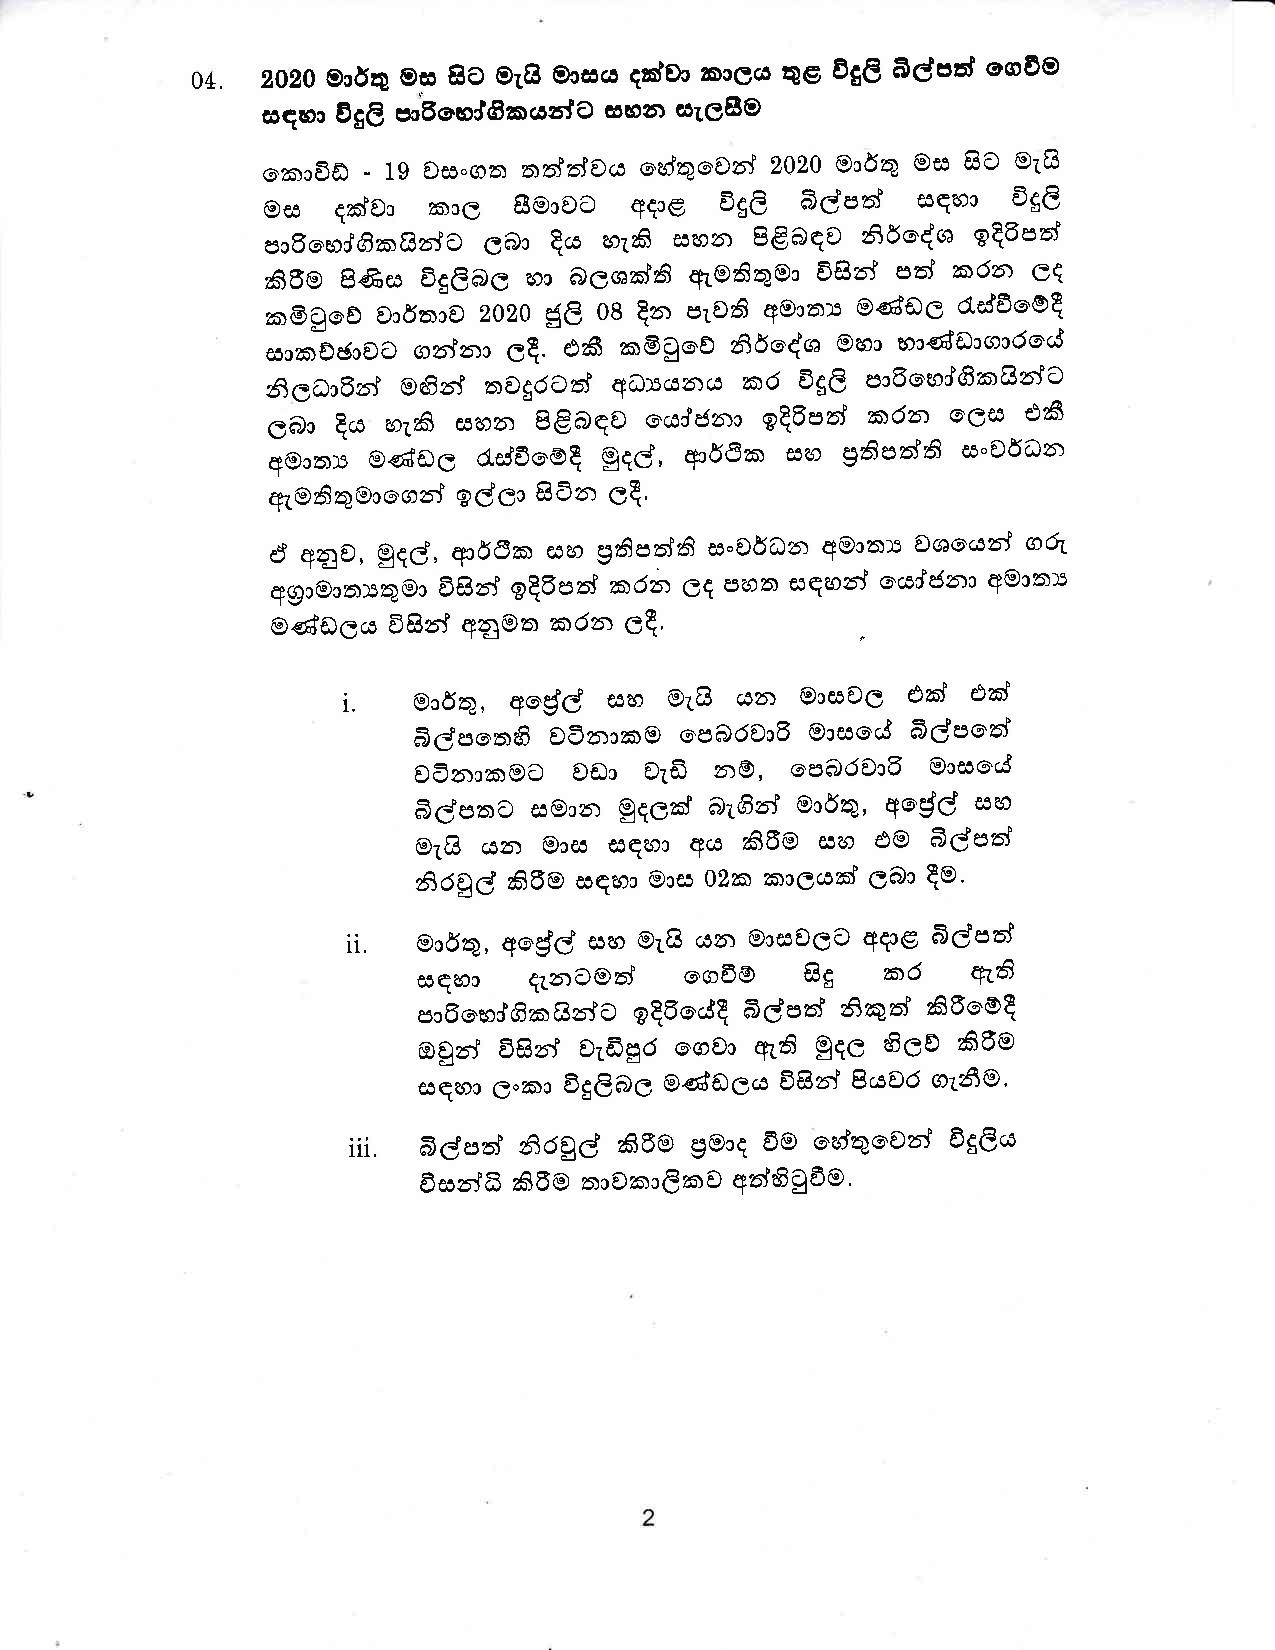 Cabinet Decision on 15.07.2020.Sinhala page 002